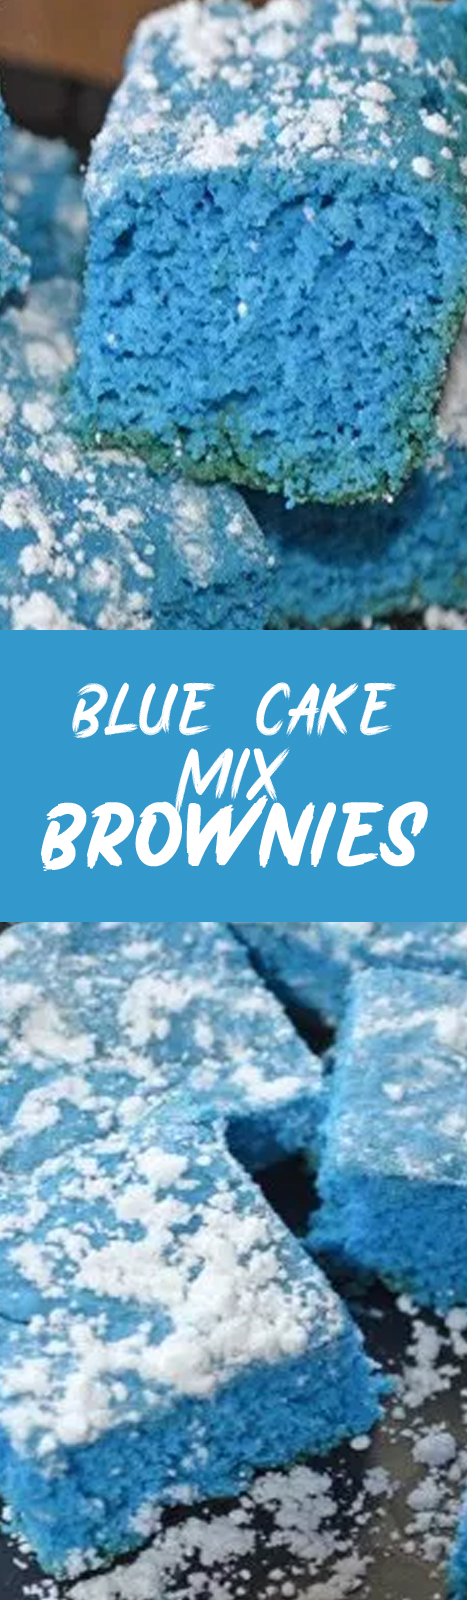 Recipe Blue Cake Mix Brownies #cake #brownies